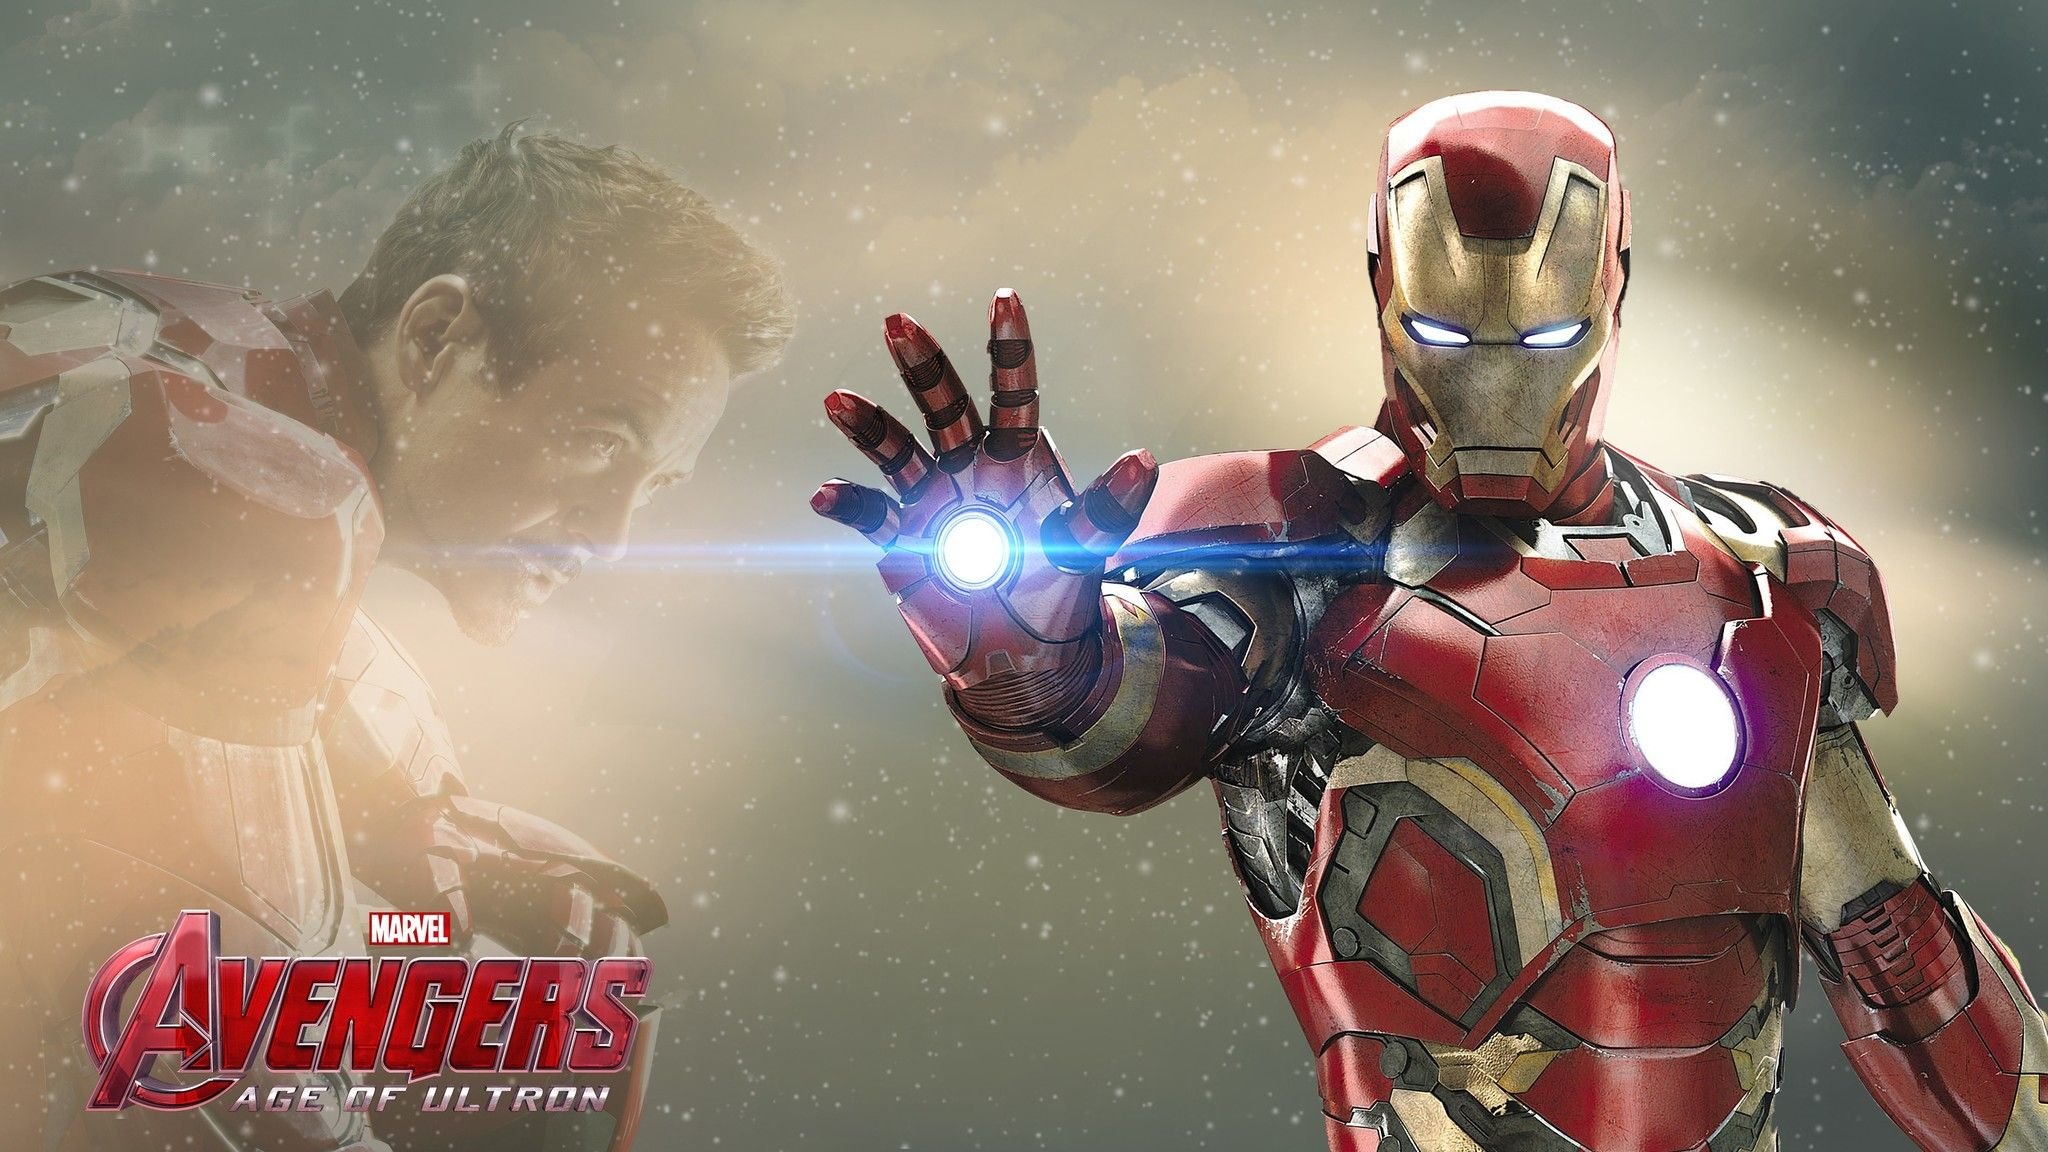 2048x1152 Iron Man 4k 2048x1152 Resolution HD 4k Wallpapers, Image